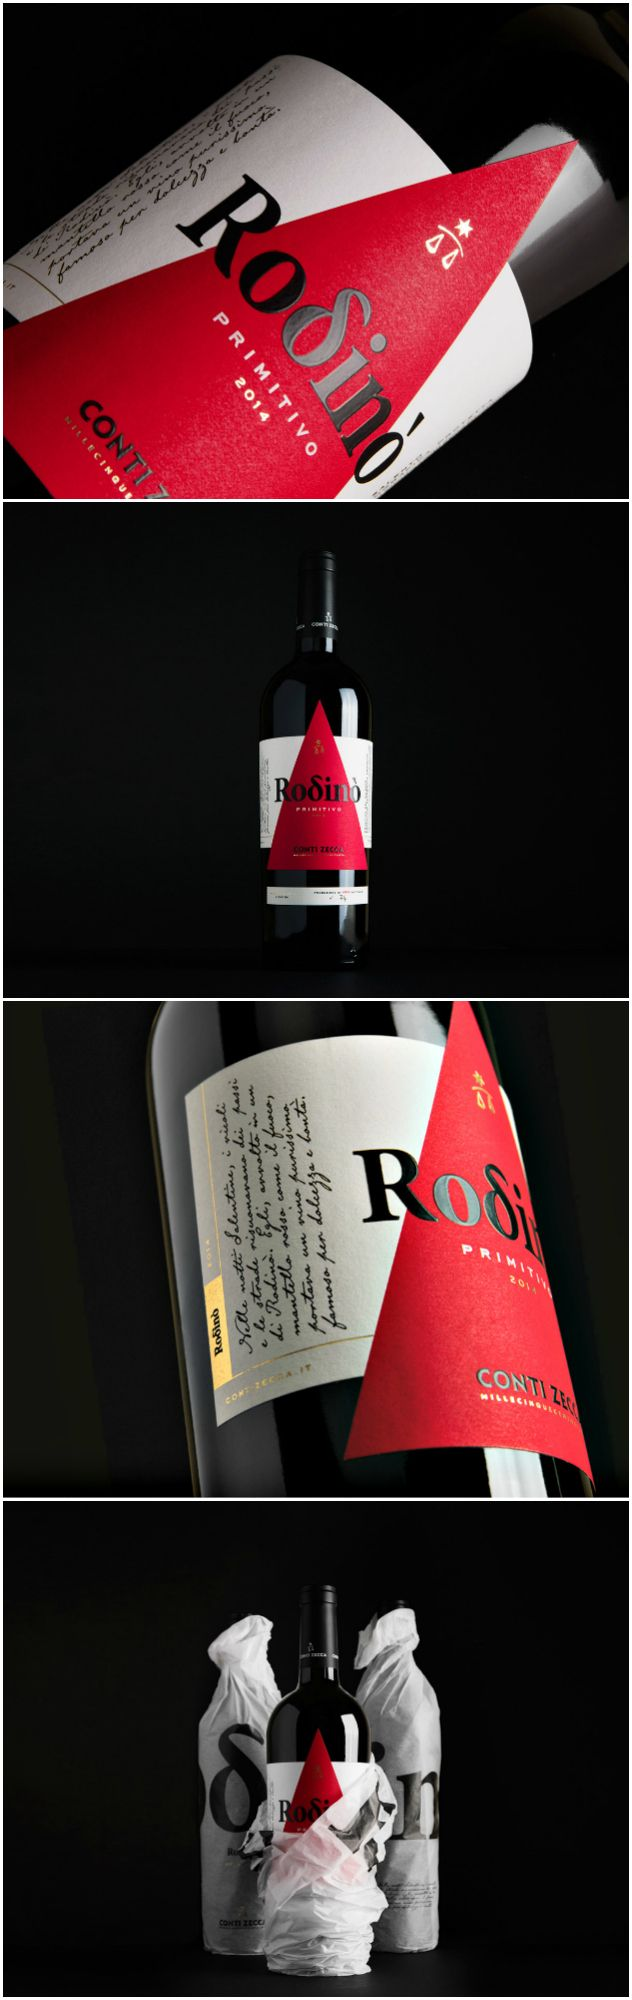 Carosello Lab The Food Pirate Rodino Conti Zecca Wine World Brand Design Society